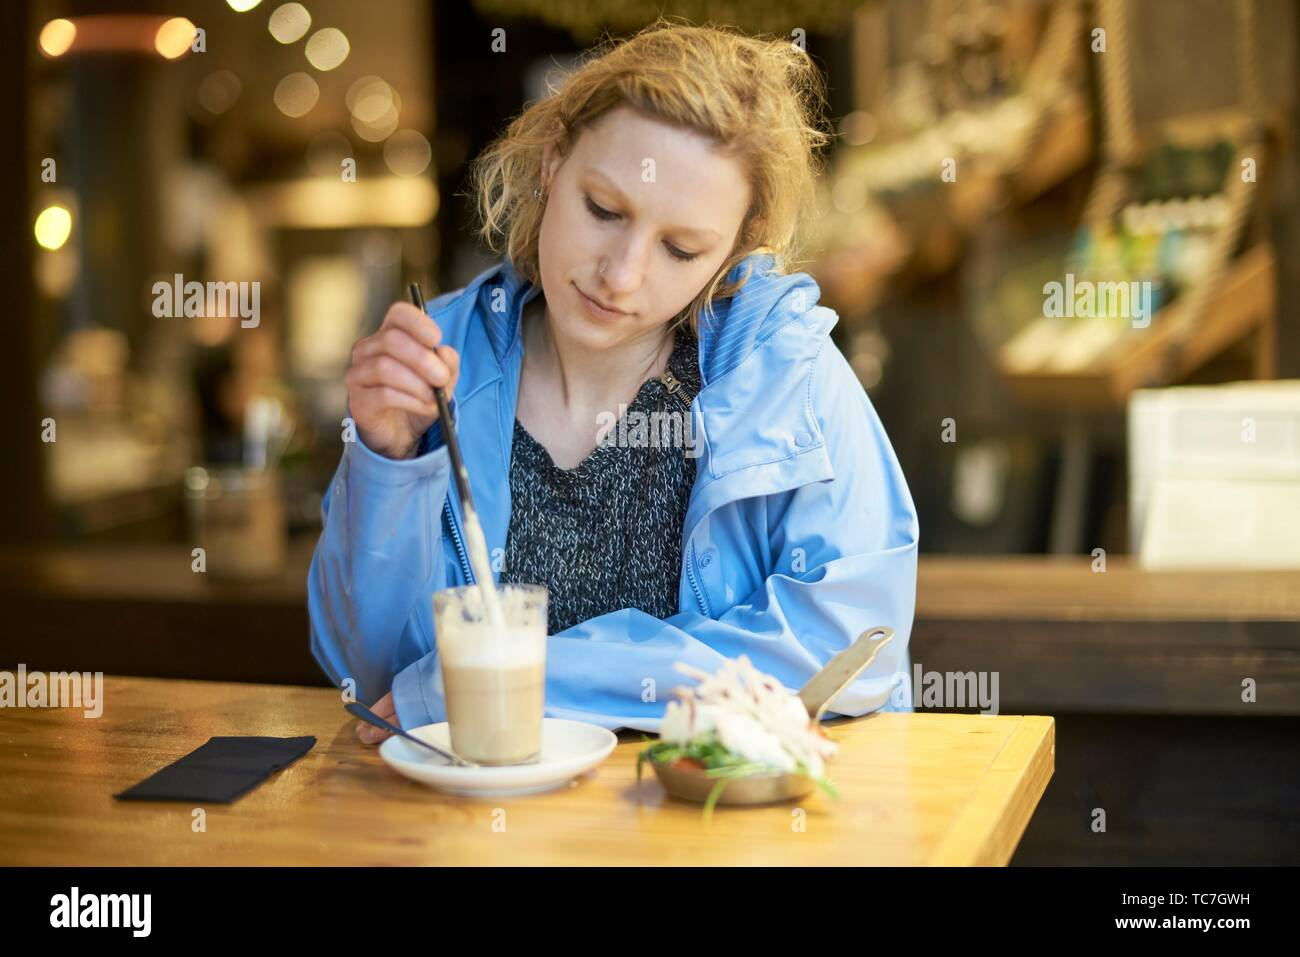 Young thoughtful woman stirring latte macchiato with drinking straw, in cafe, taking a break alone, thinking, in Munich, Germany. Stock Photo